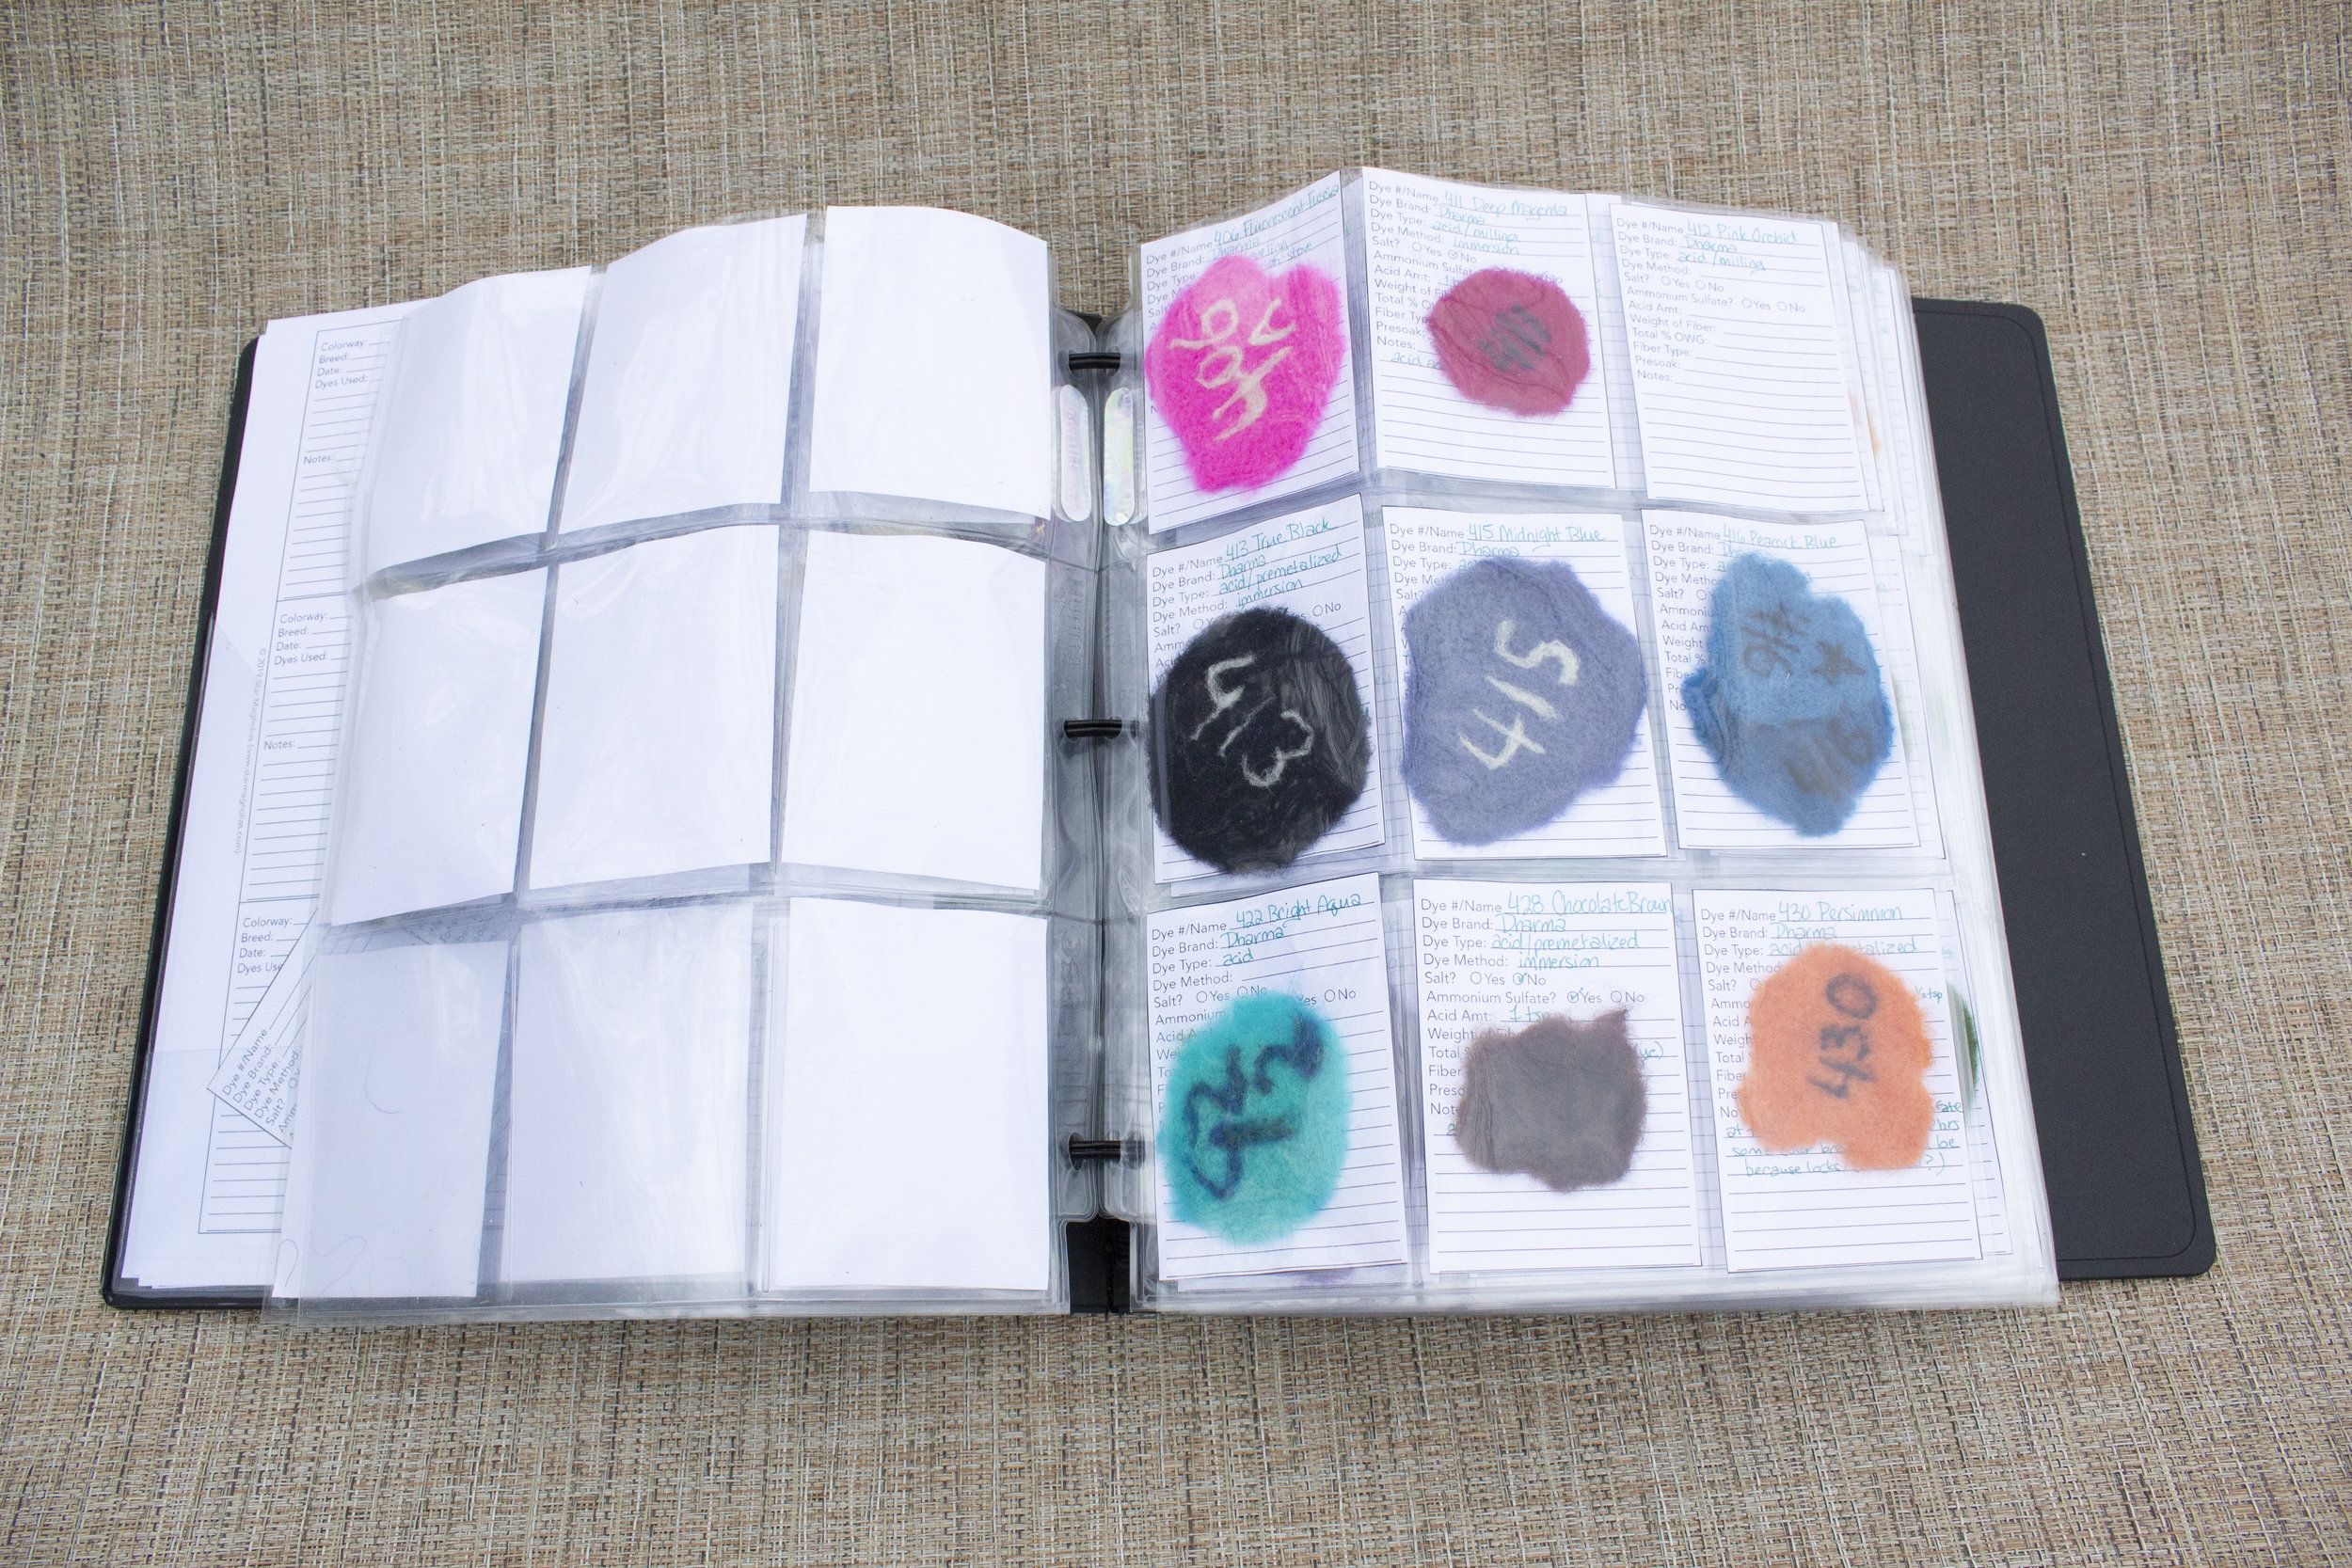 Image: open binder with trading card binder sheets filled with different dyed and numbered needle felted patches, stuffed in the pockets in front of forms describing each sample